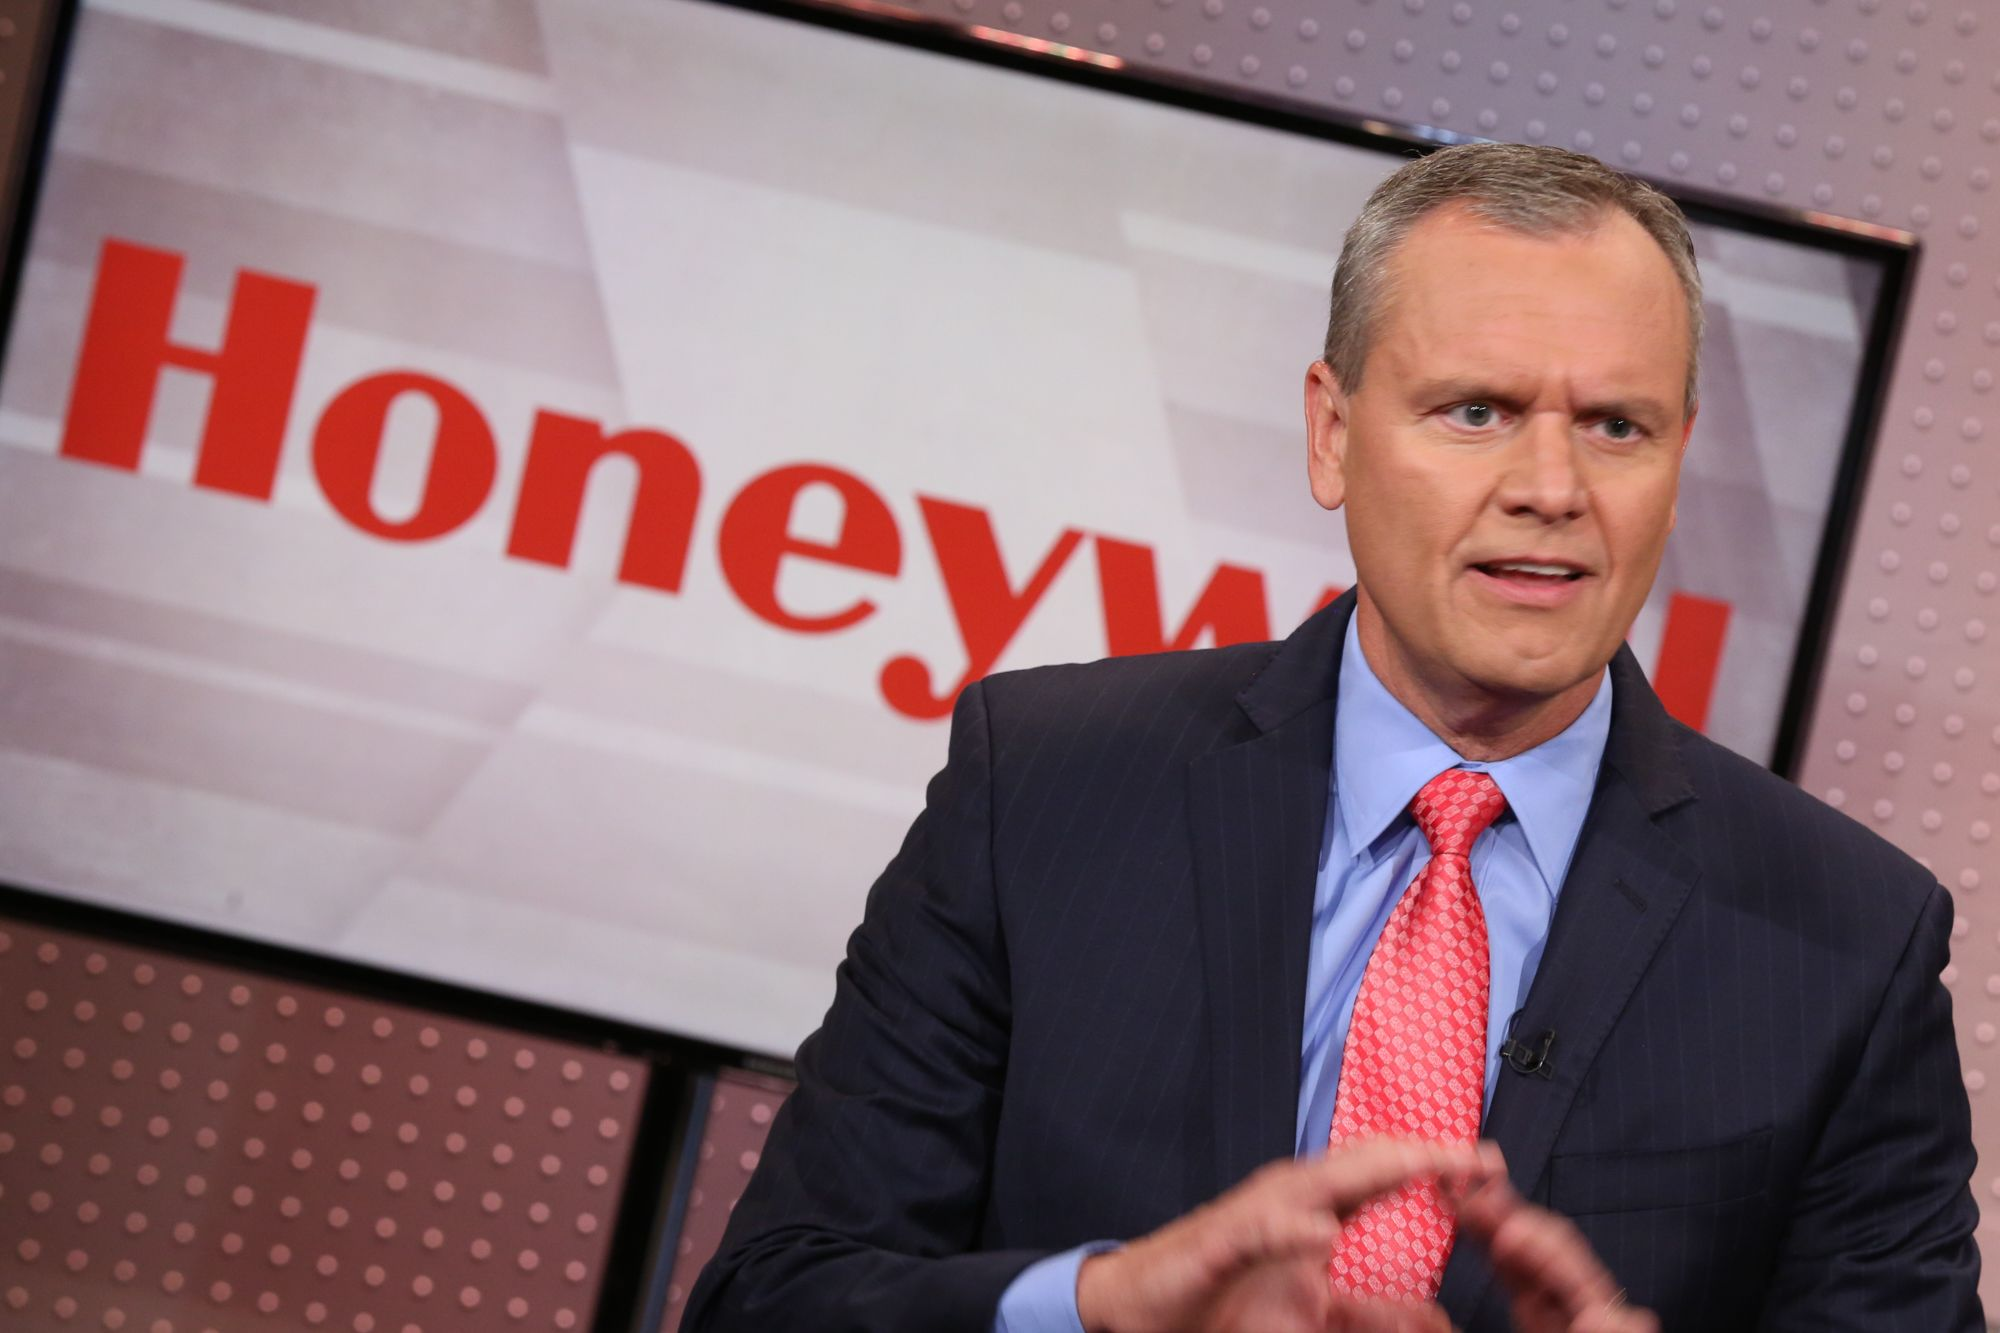 Assessing the Honeywell spinoff one year later — stocks to buy and not, according to Jim Cramer